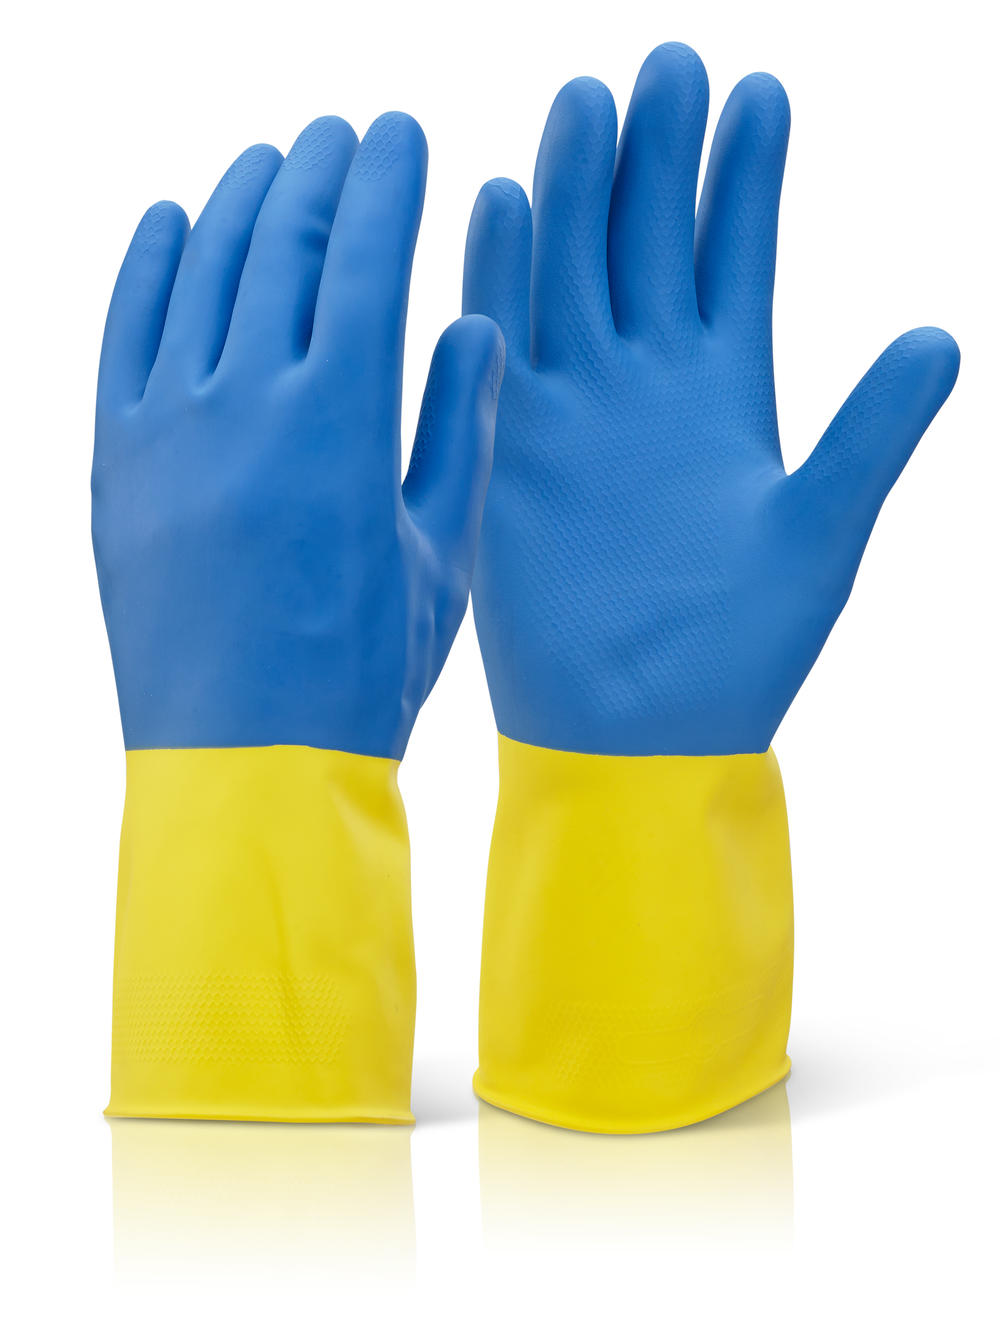 Bi-colour Neoprene Household Gloves